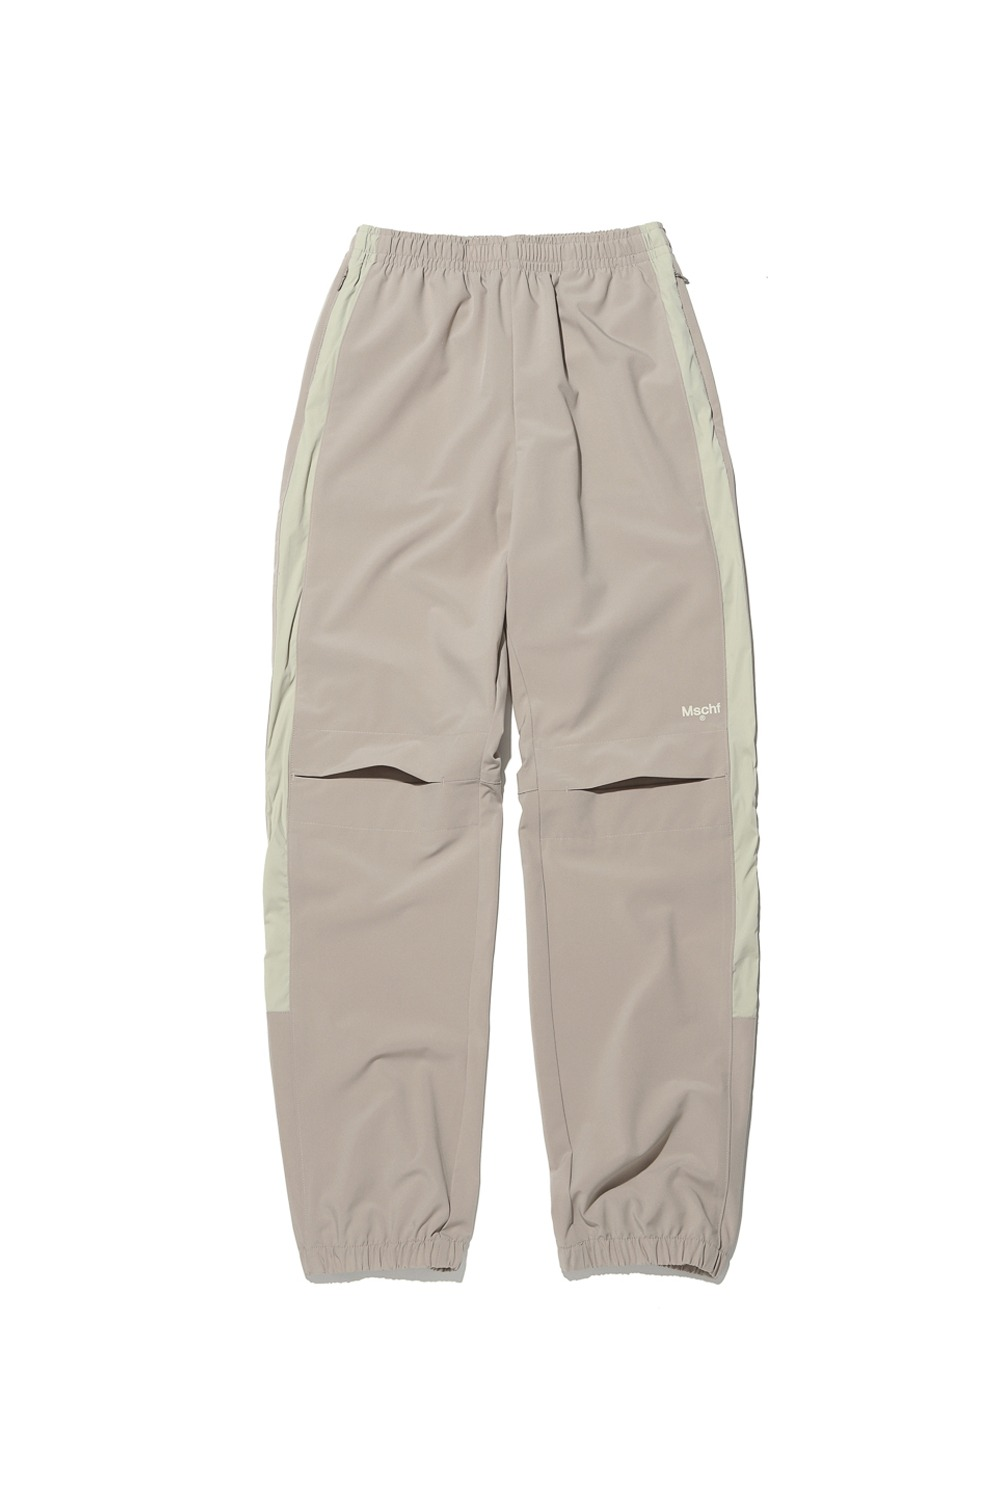 2021 CALL OUT_MSCHF TRACKSUIT PANTS_BEIGE